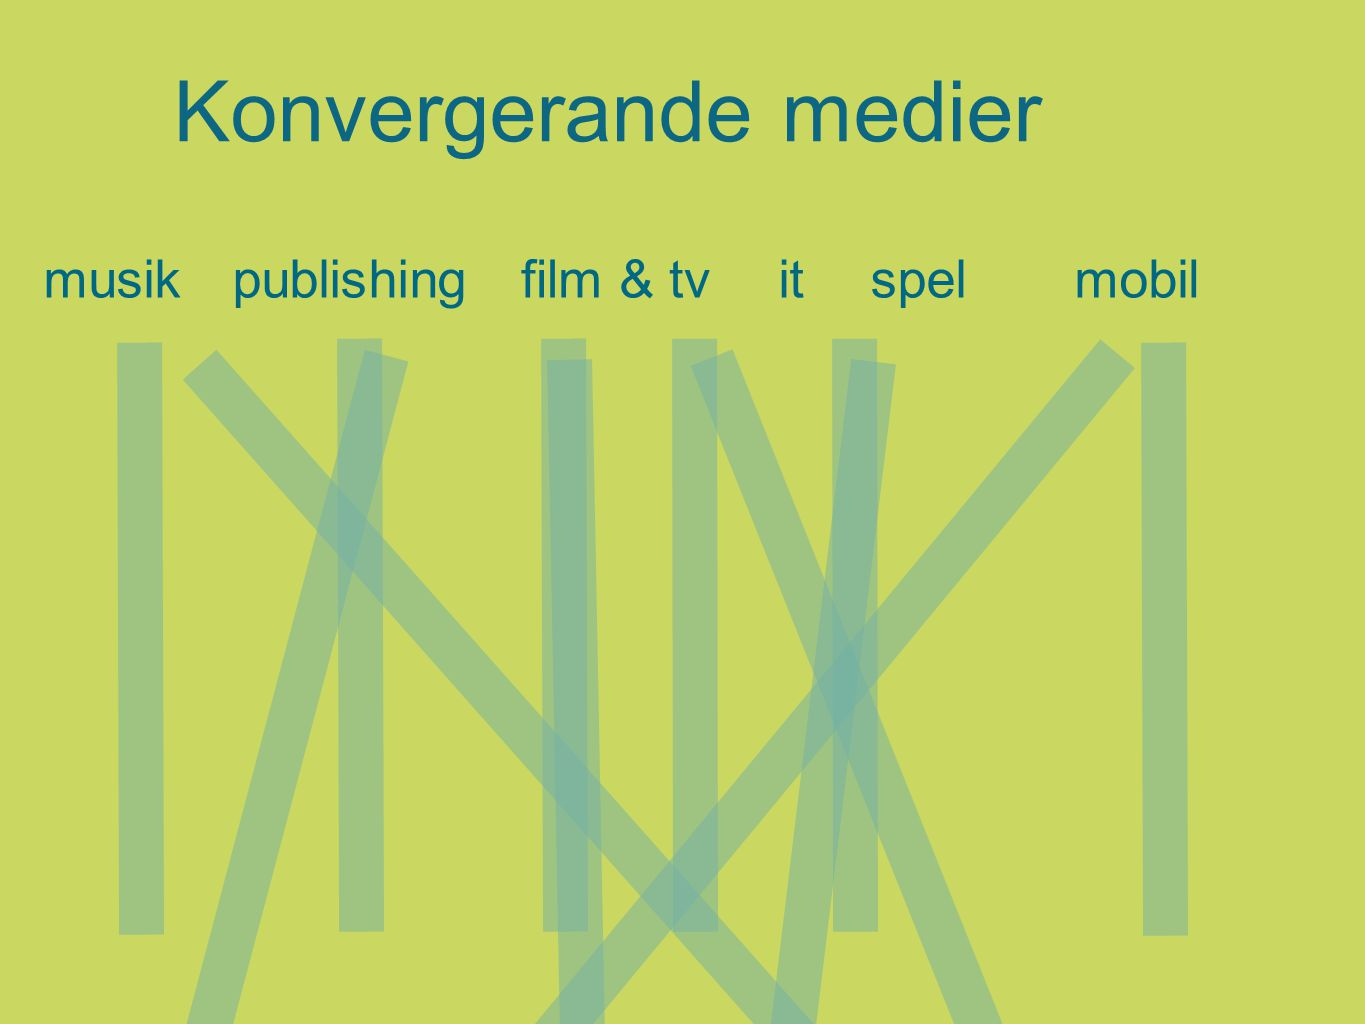 Konvergerande medier musik publishing film & tv it spel mobil